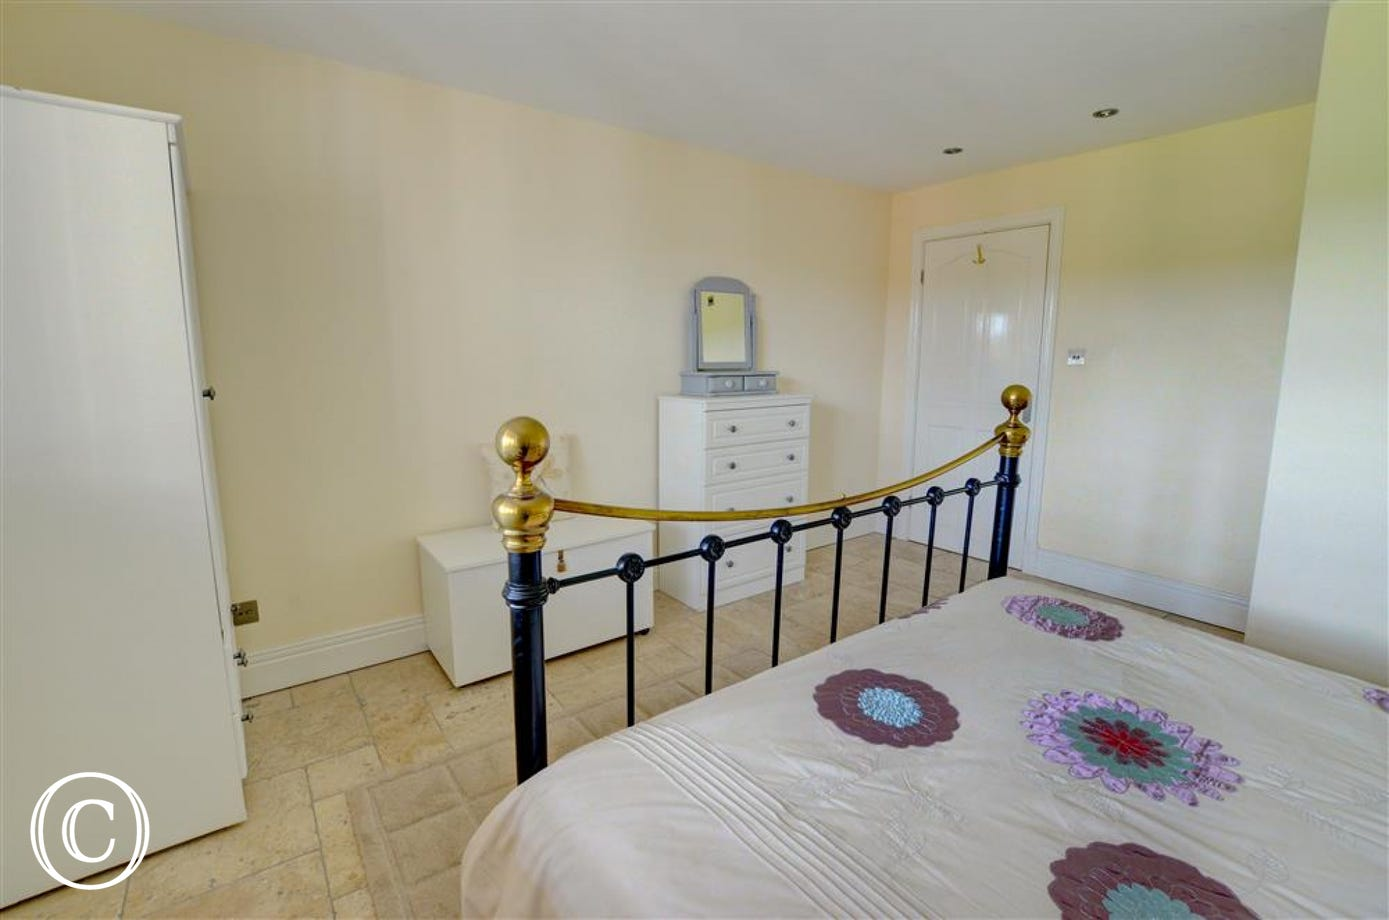 The Bedroom has plenty of furniture and storage area and also features an En-suite,